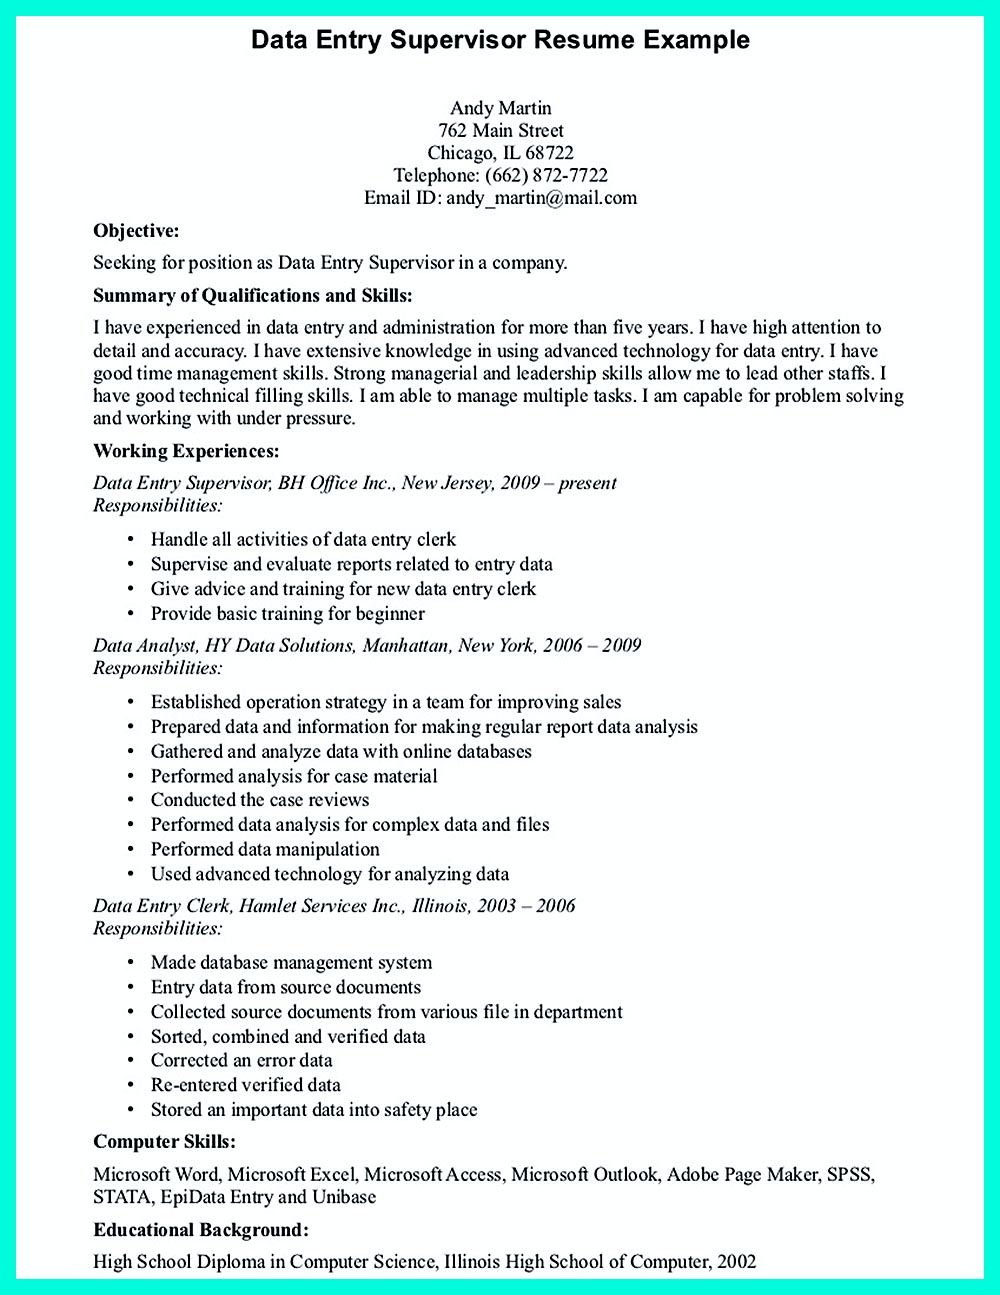 18+ Data entry resume objective ideas in 2021